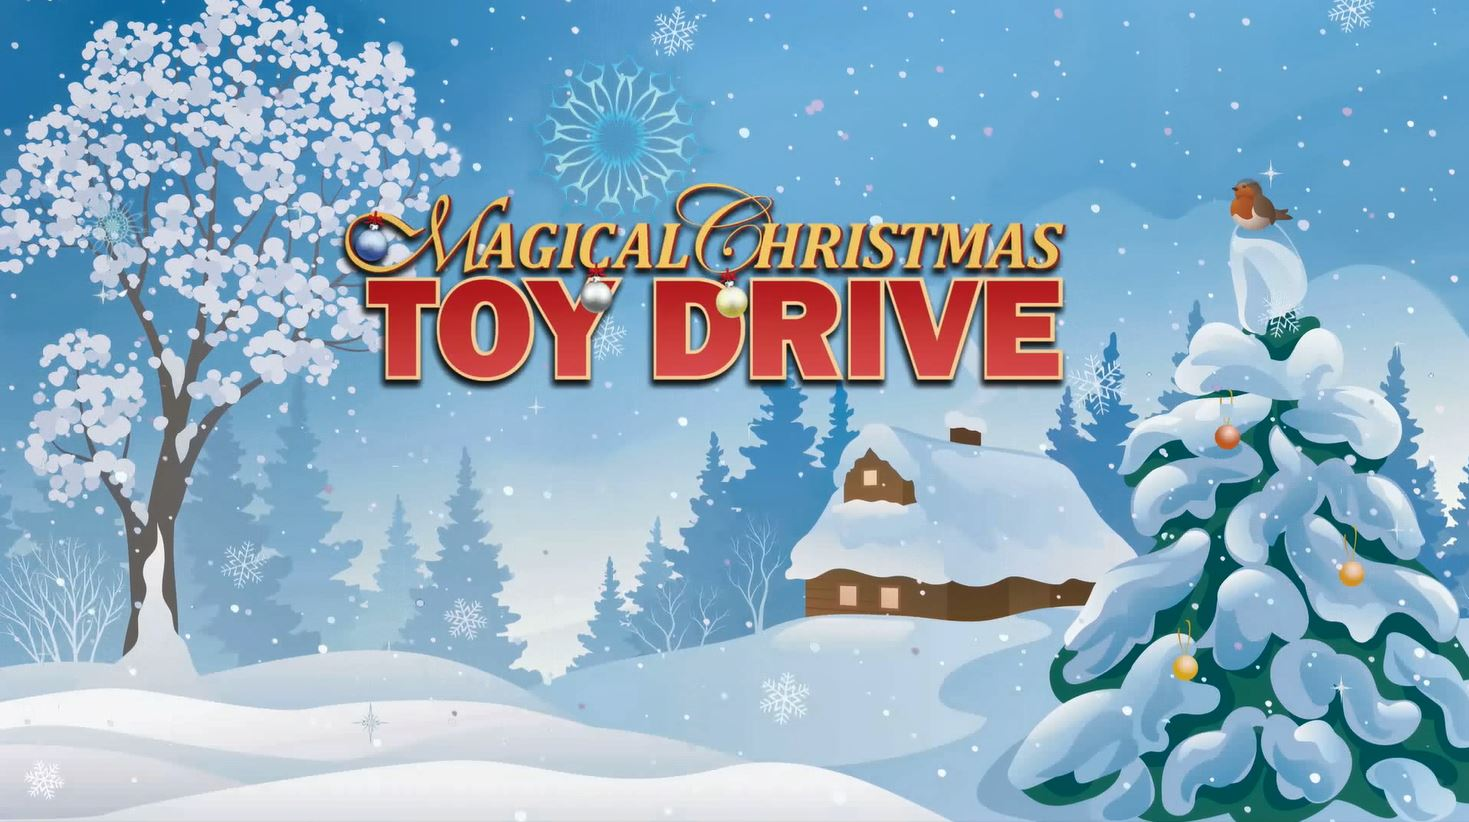 Magical Christmas Toy Drive